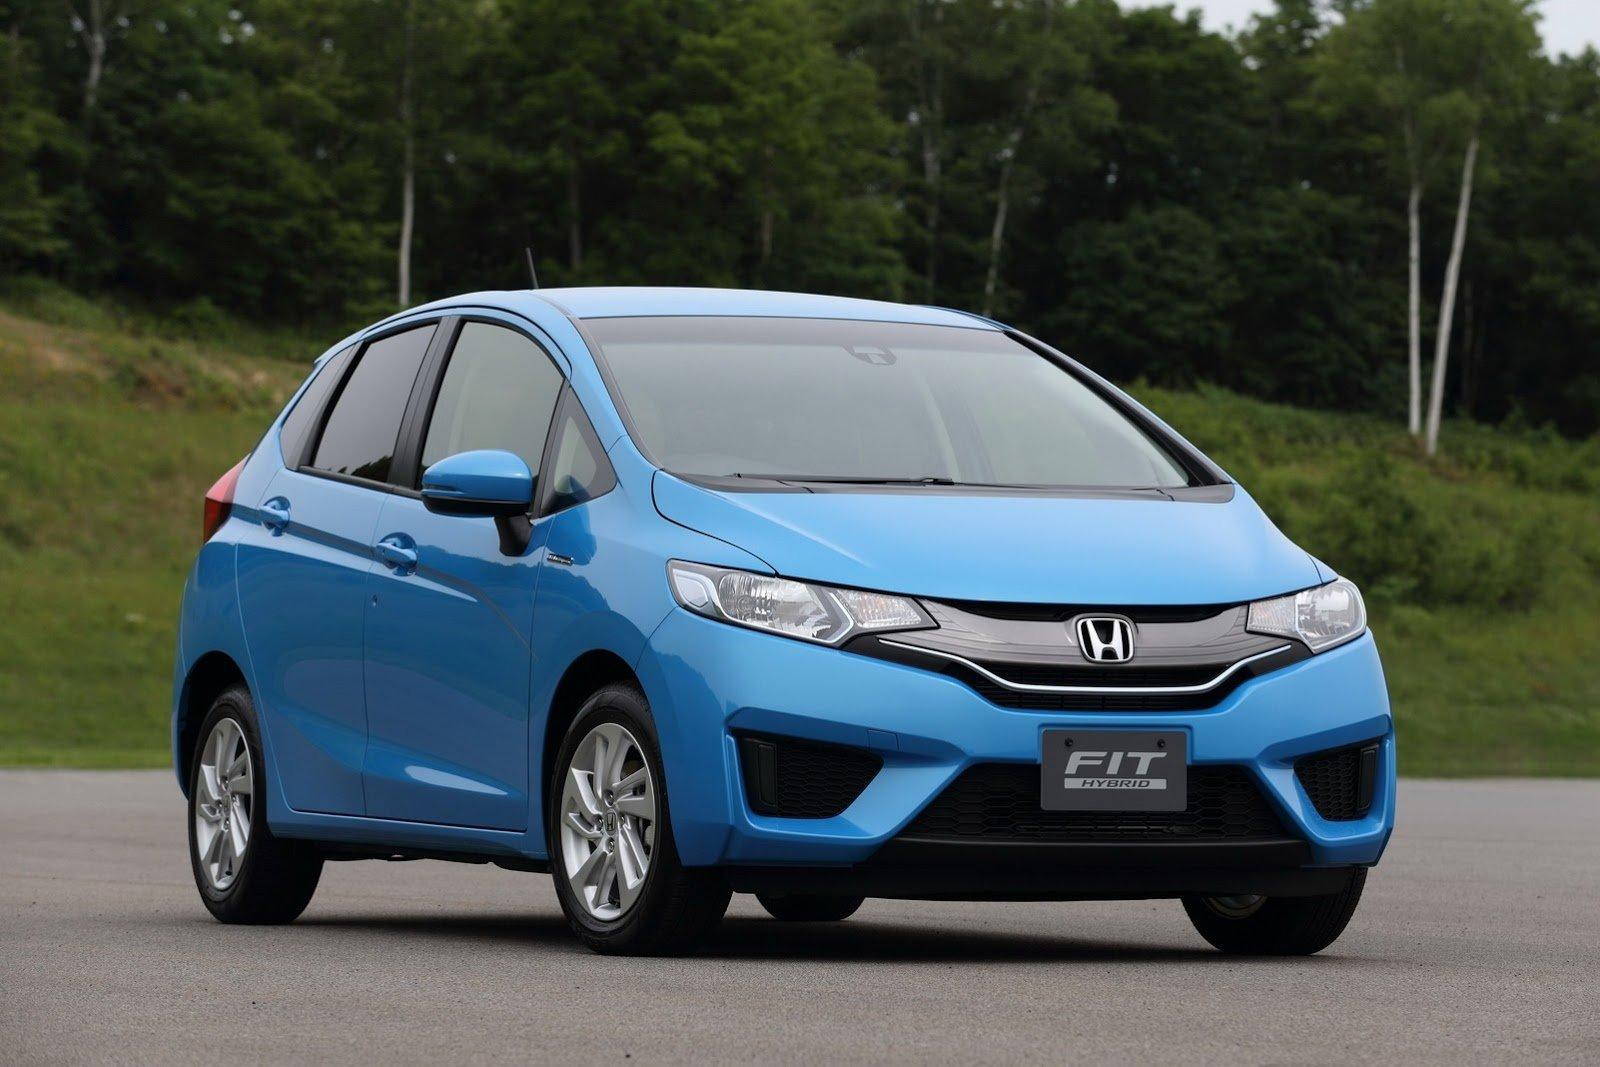 2014 Honda Jazz Expected To Be Introduced In India The Indian Auto Expo